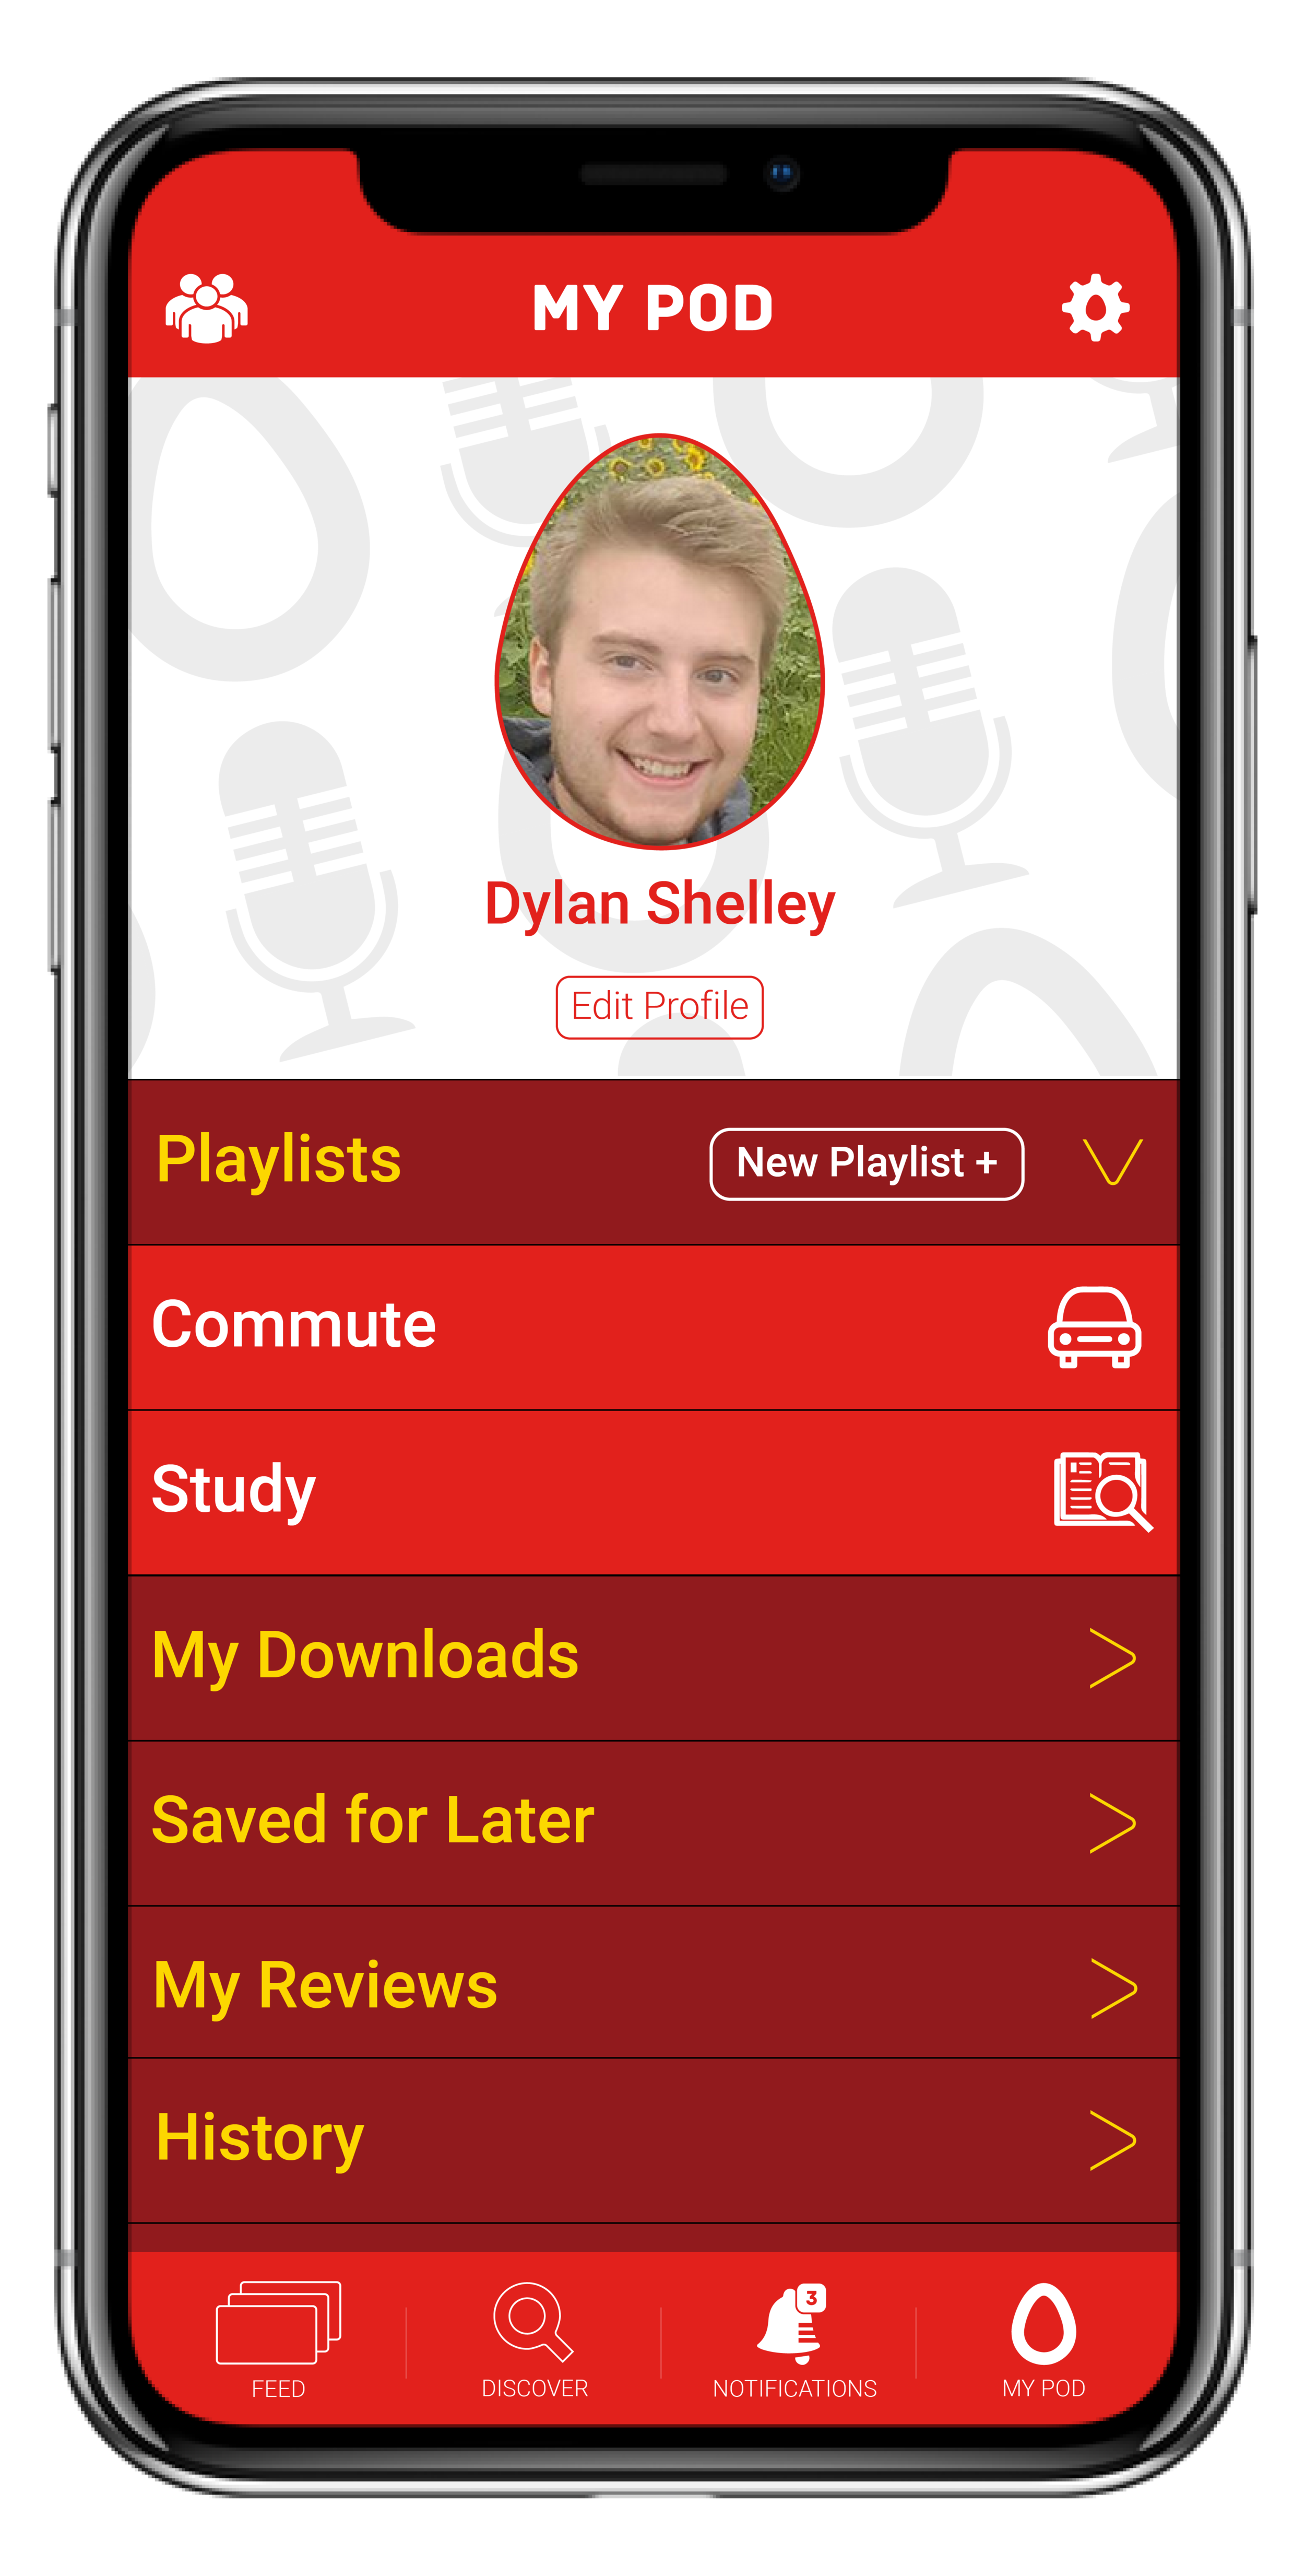 - My PODThis is where everything POD comes together. Everything from your downloads, the reviews you've left, and your listening history can be found here.Boring Commutes be GoneCreate custom playlists to plan out your days accordingly. Allows from easy, hands-free listening all day long.